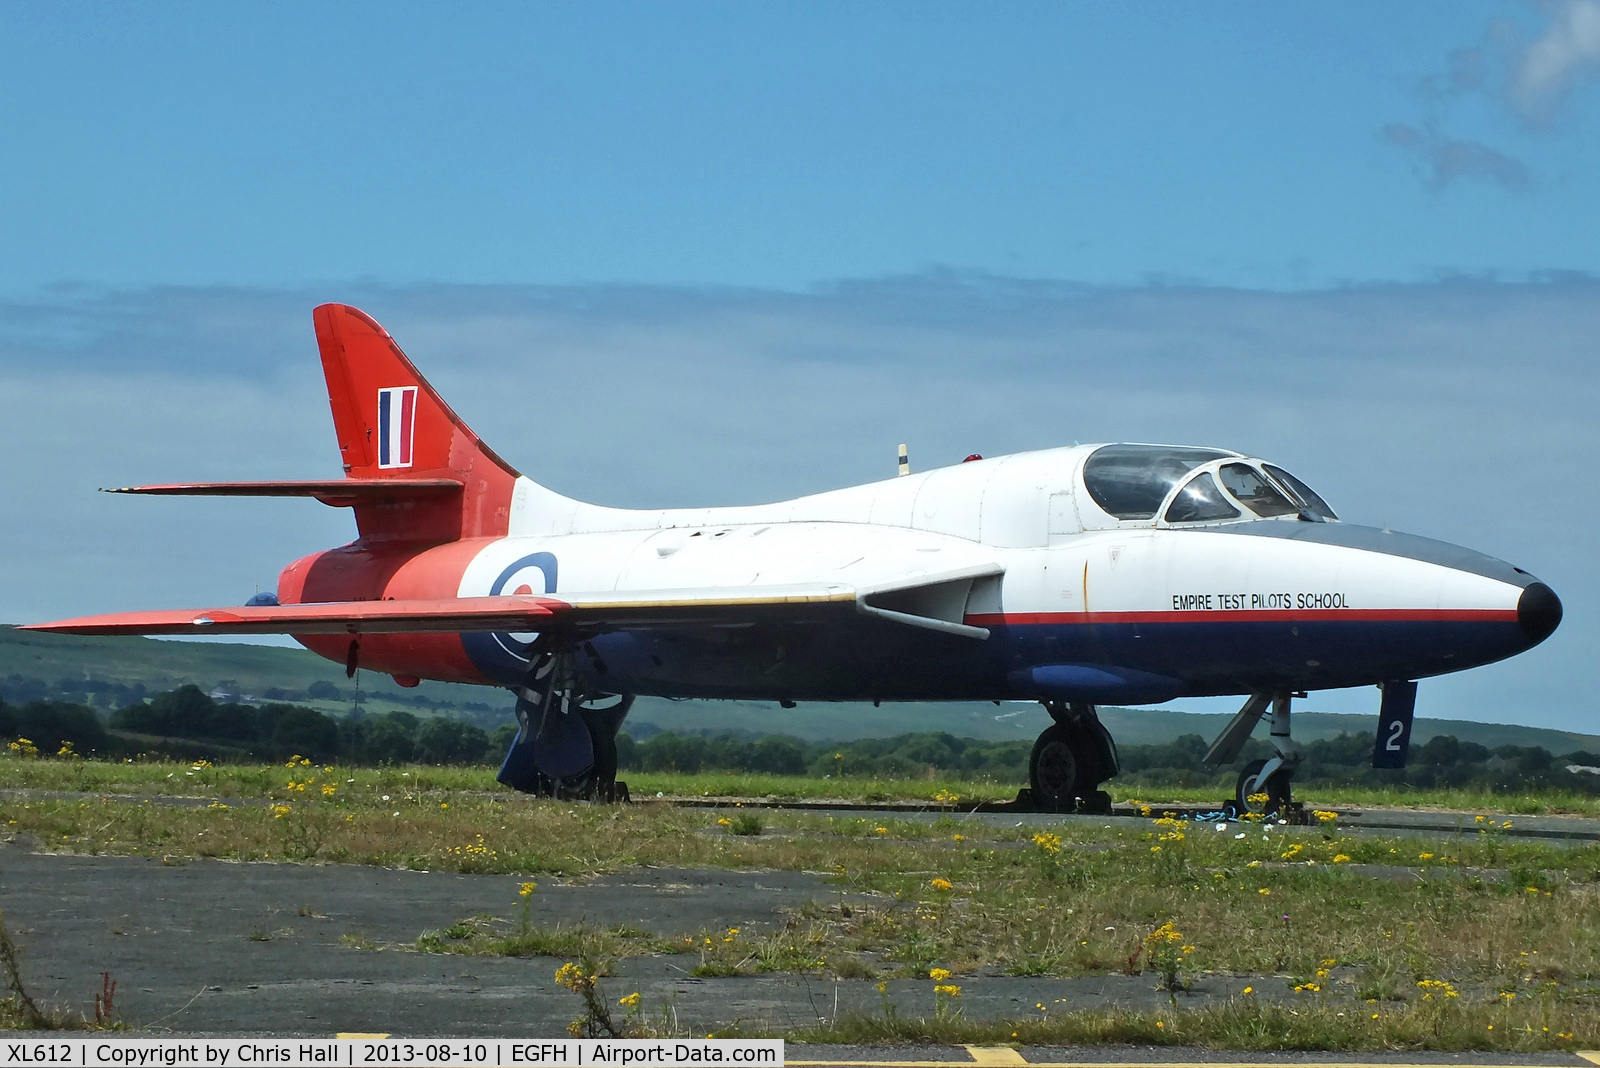 XL612, 1958 Hawker Hunter T.7 C/N 41H-695346, former Empire Test Pilots School now owned by Hunter Flying Ltd